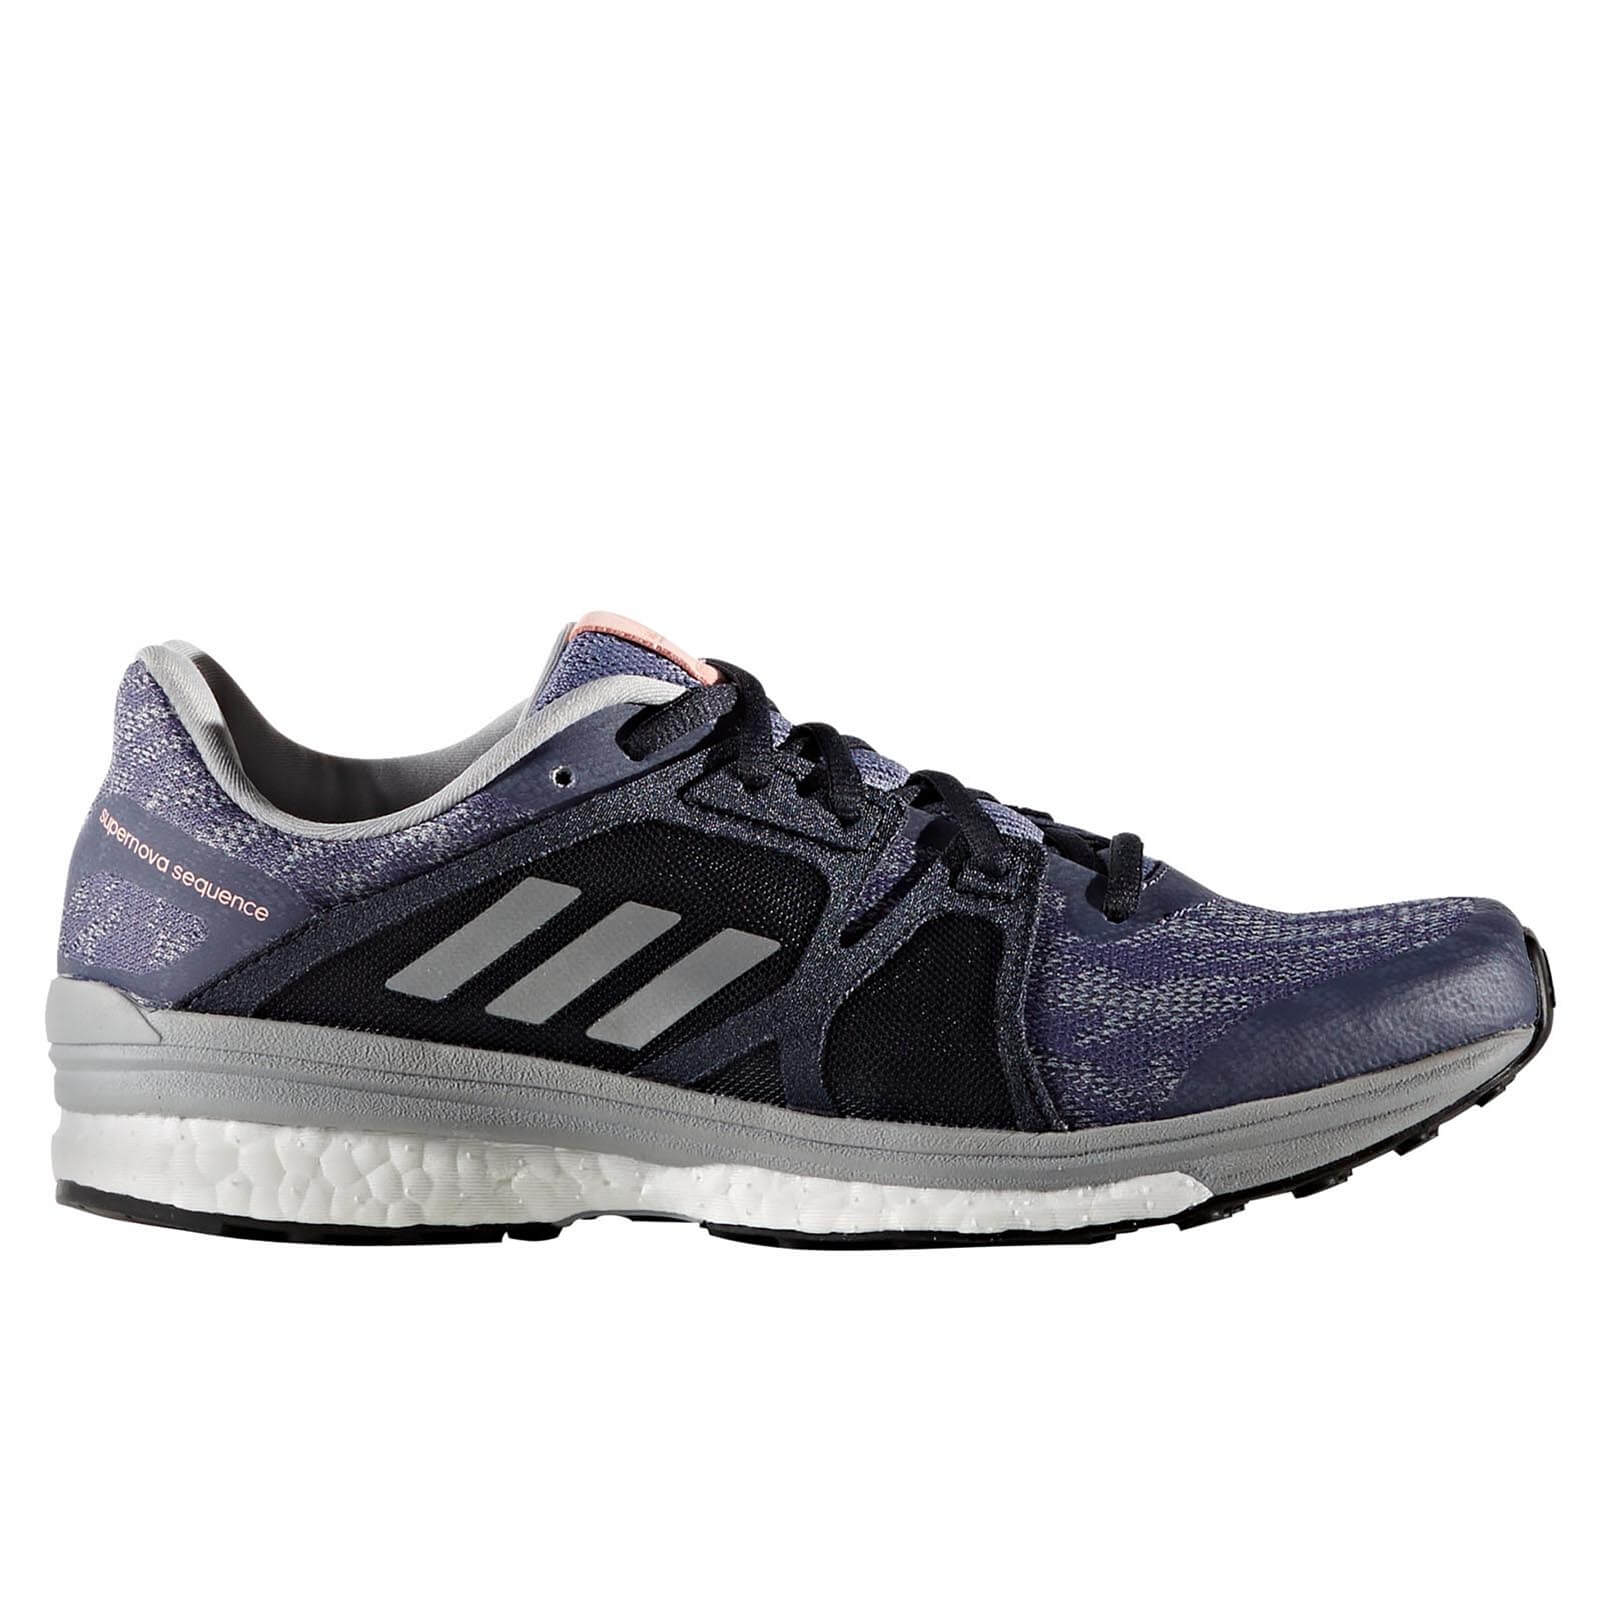 4241360e93d97 adidas Women s Supernova Sequence 9 Running Shoes - Super Purple ...